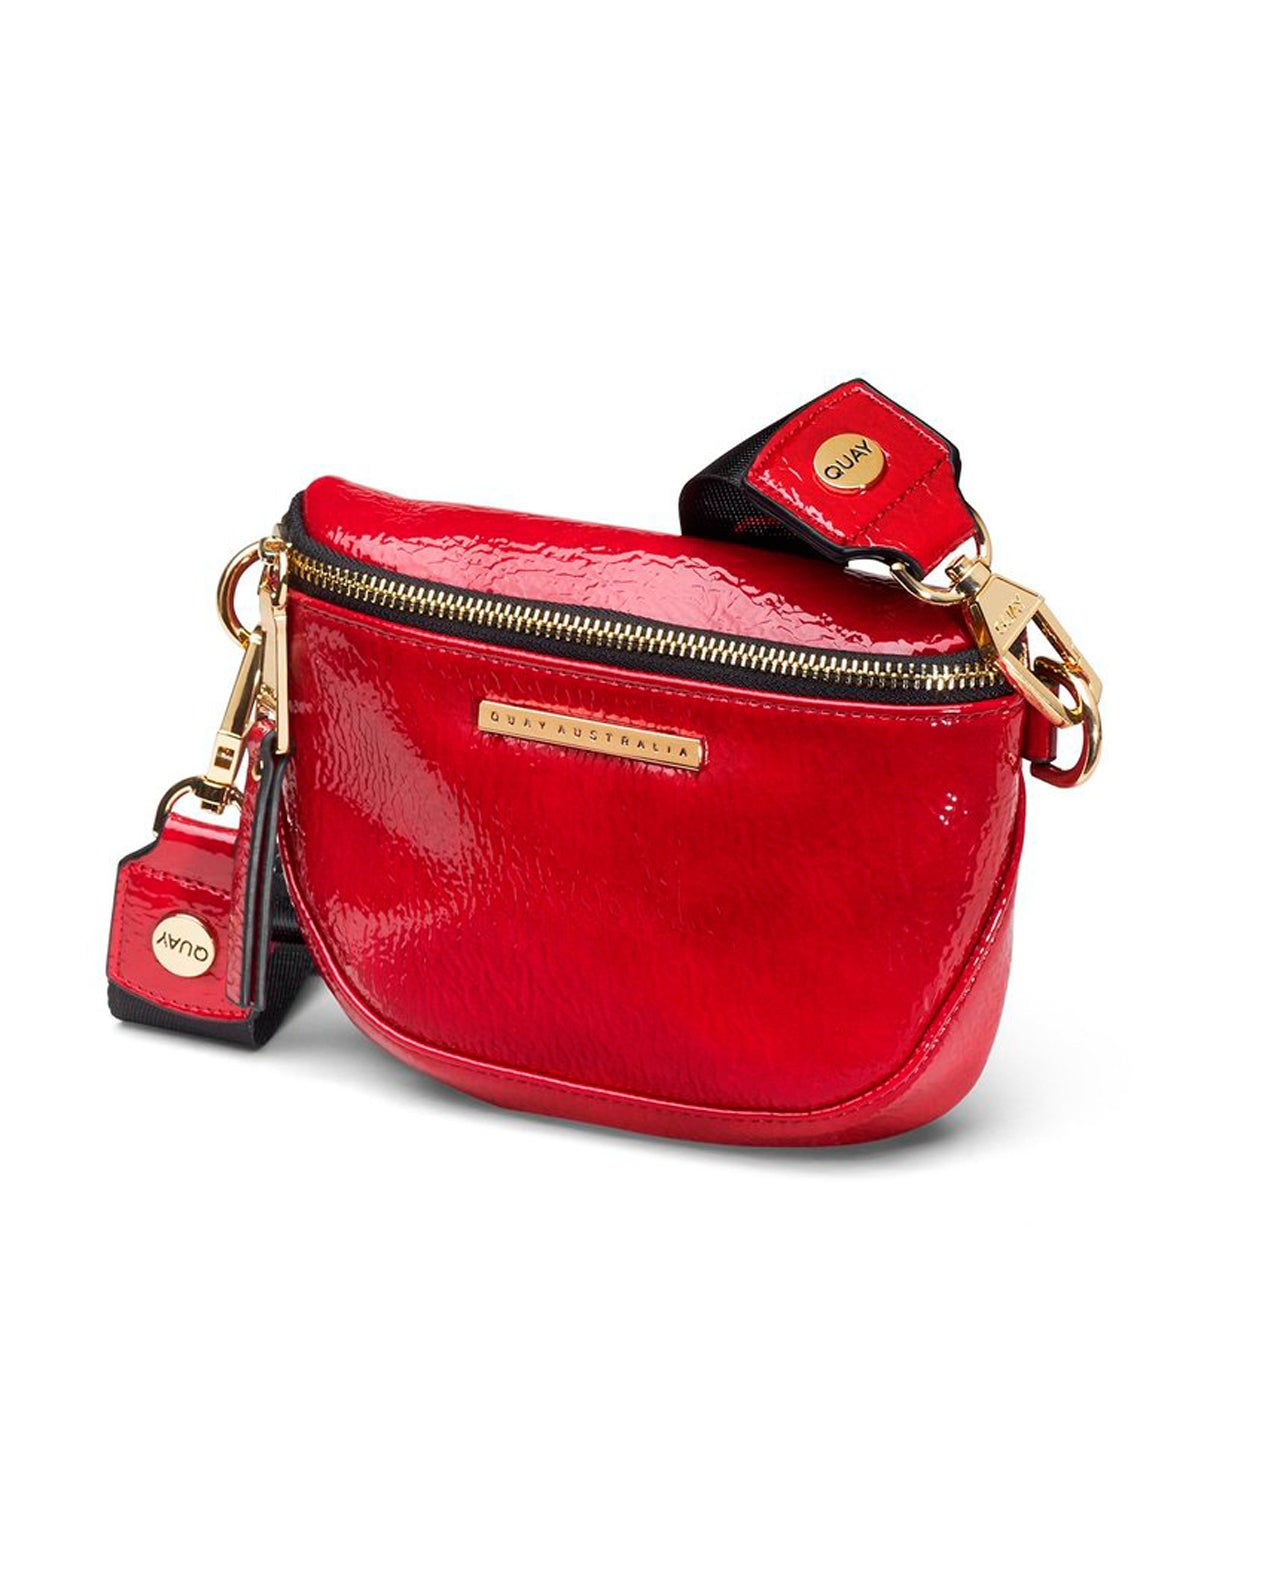 Quay Bum Bag - Red Gold